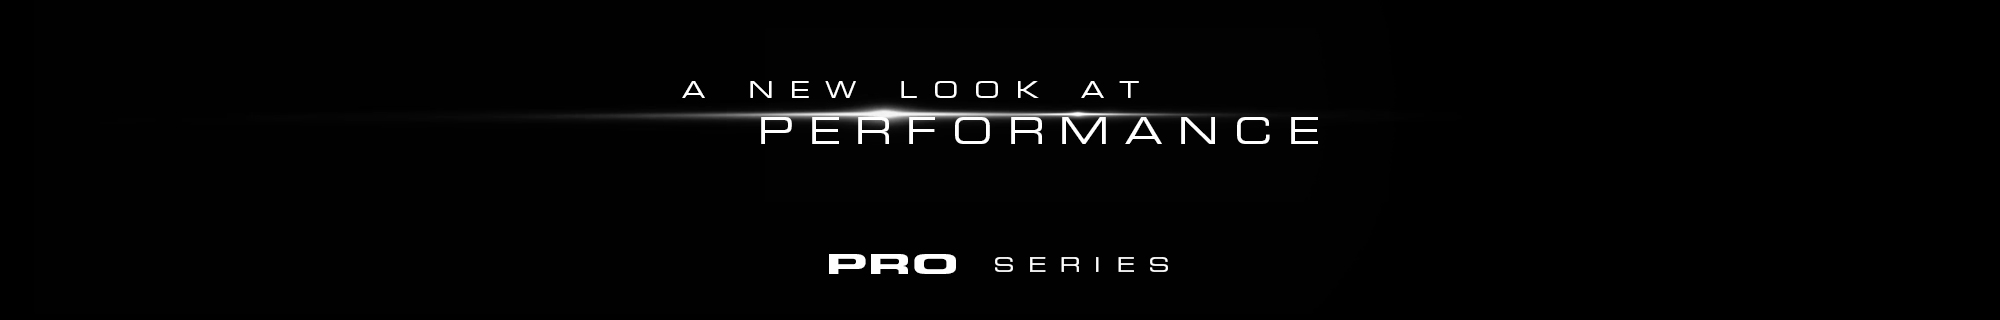 A New Look at Performance | DHD Pro Series MF DNA, MF JBAY & DX1